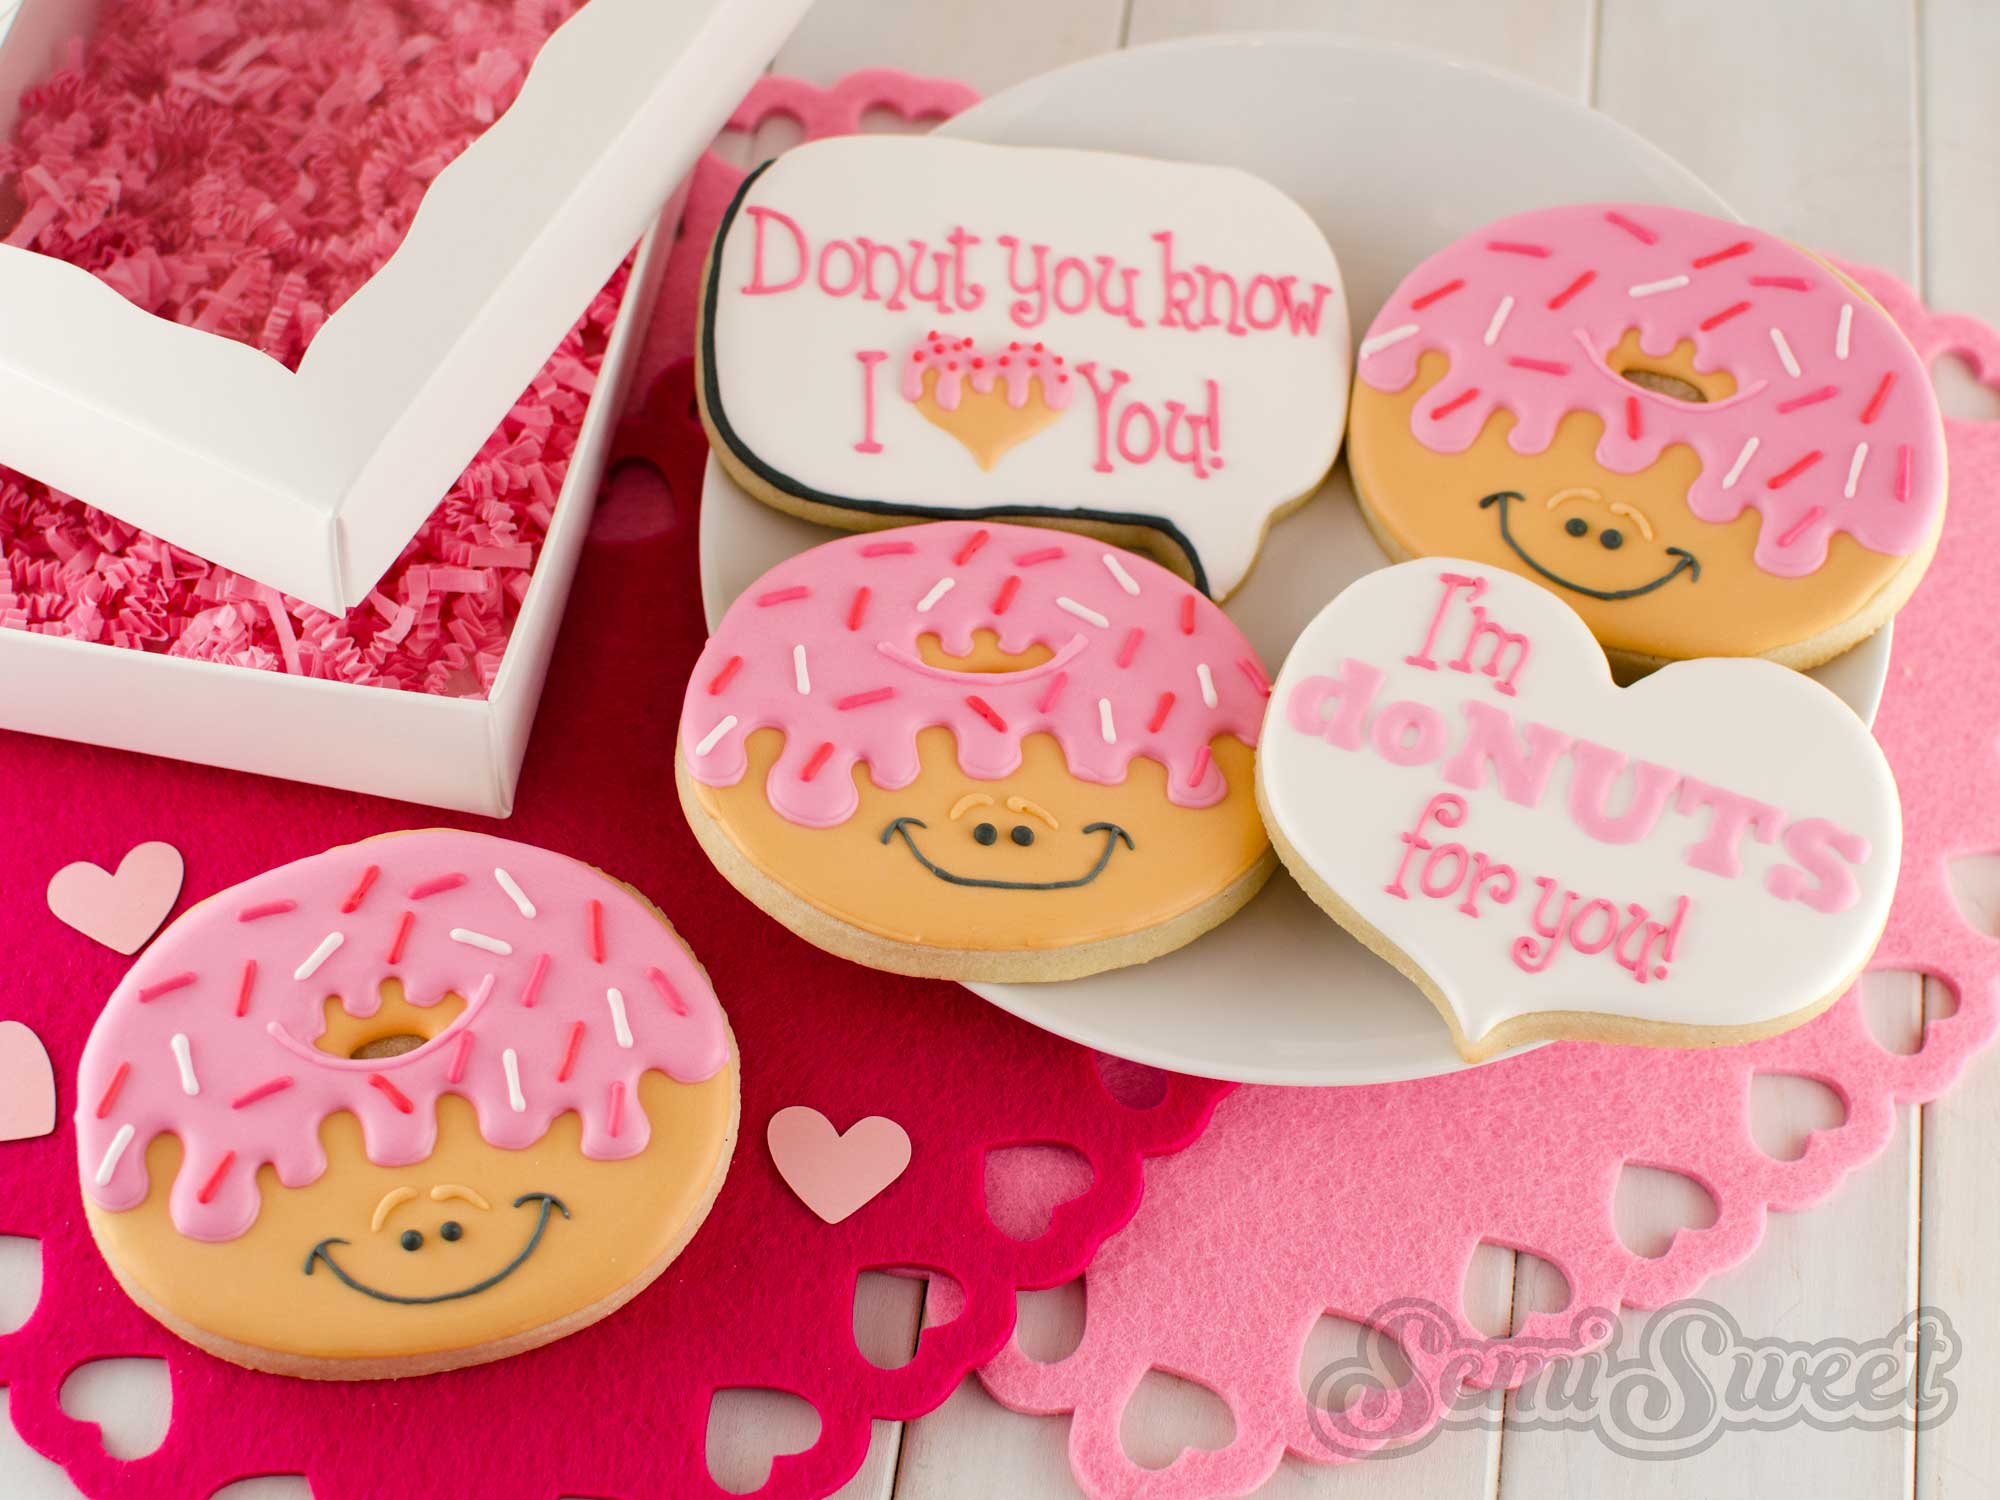 How to Make Decorated Donut Cookies